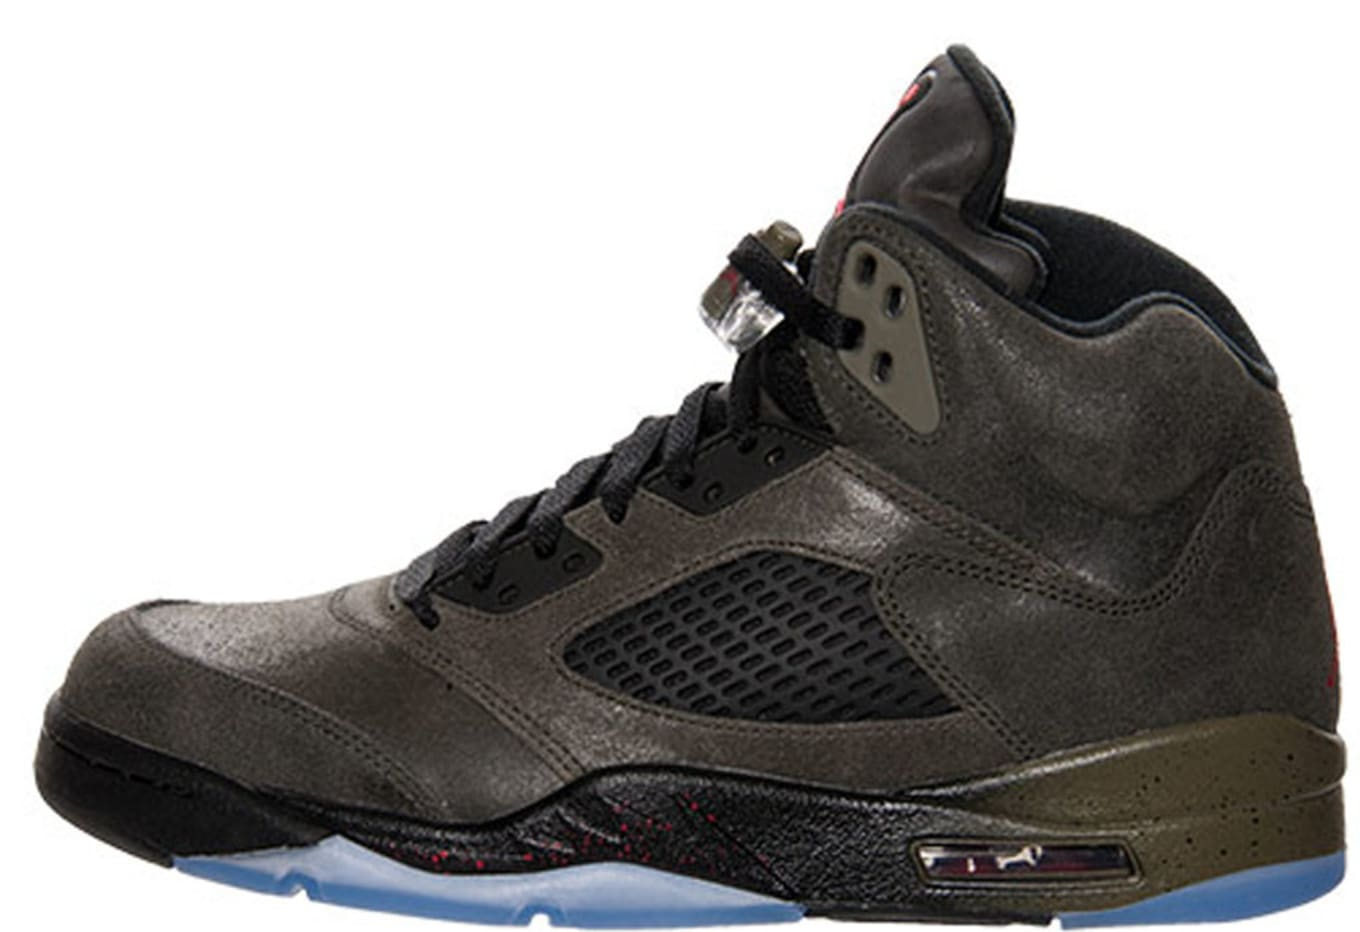 8c2439e5b69 Air Jordan 5: The Definitive Guide to Colorways | Sole Collector